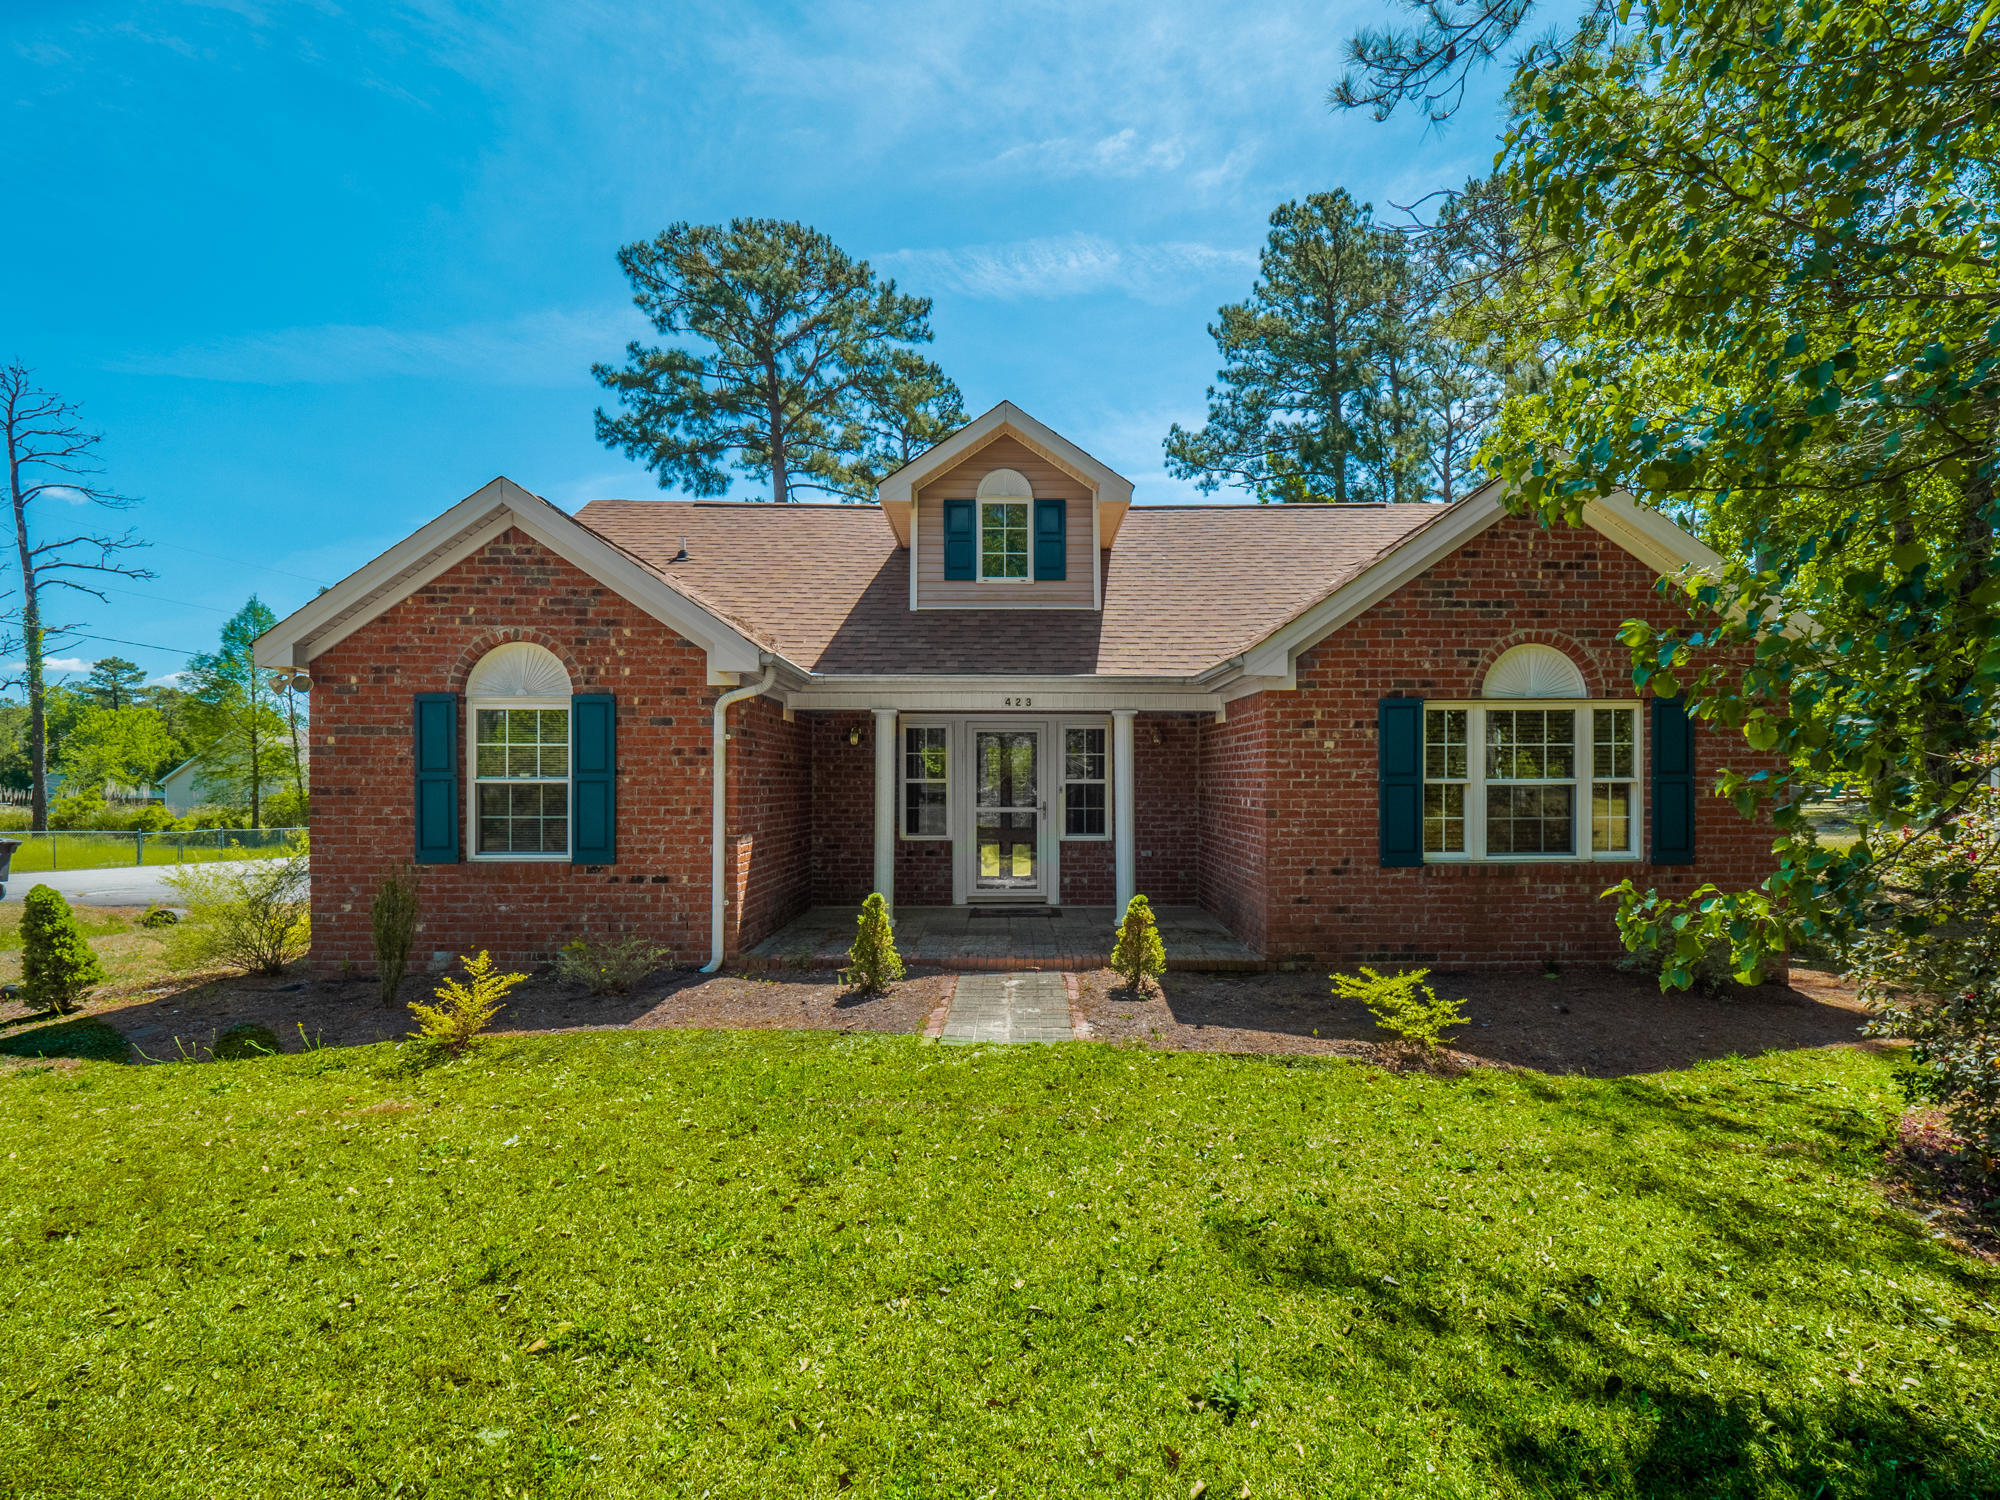 If you are looking for something that offers you a ton of SPACE and is in a great LOCATION, this is the home for you! Located on a large, corner lot just 1.6 miles from the 172 Gate of Camp Lejeune, your new home is close to shopping, restaurants, good schools, and a short drive to historic downtown Swansboro. Enjoy your large master suite, fantastic floors, and detached apartment that makes the perfect in-law suite. Seeing is believing. Schedule your showing today!